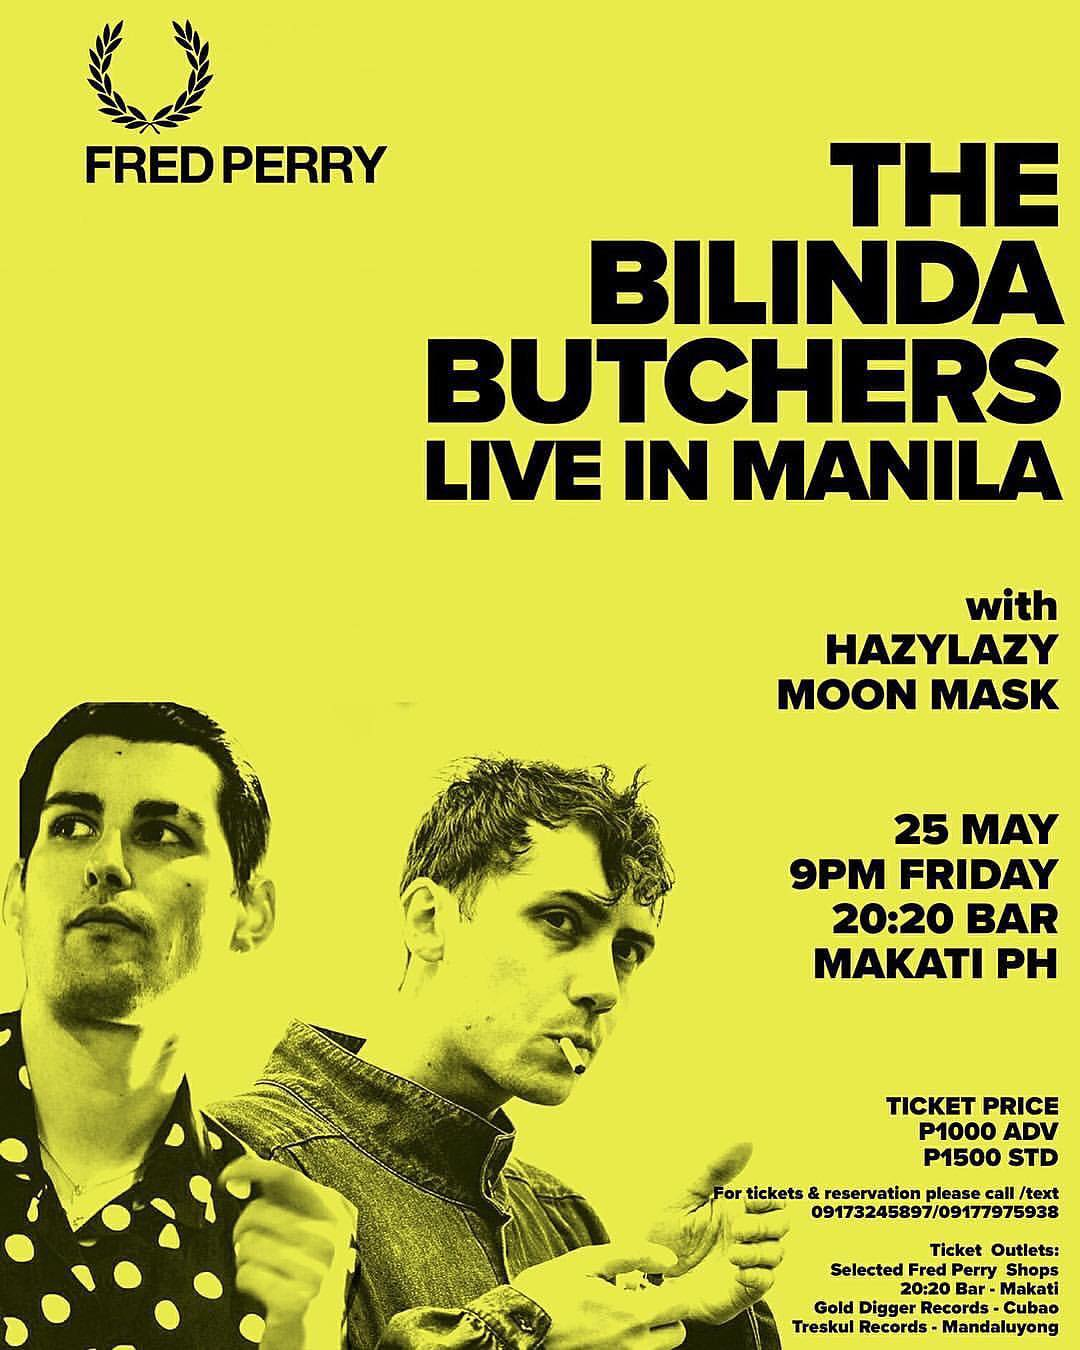 Music News: Win Tickets To See The Bilinda Butchers Live In